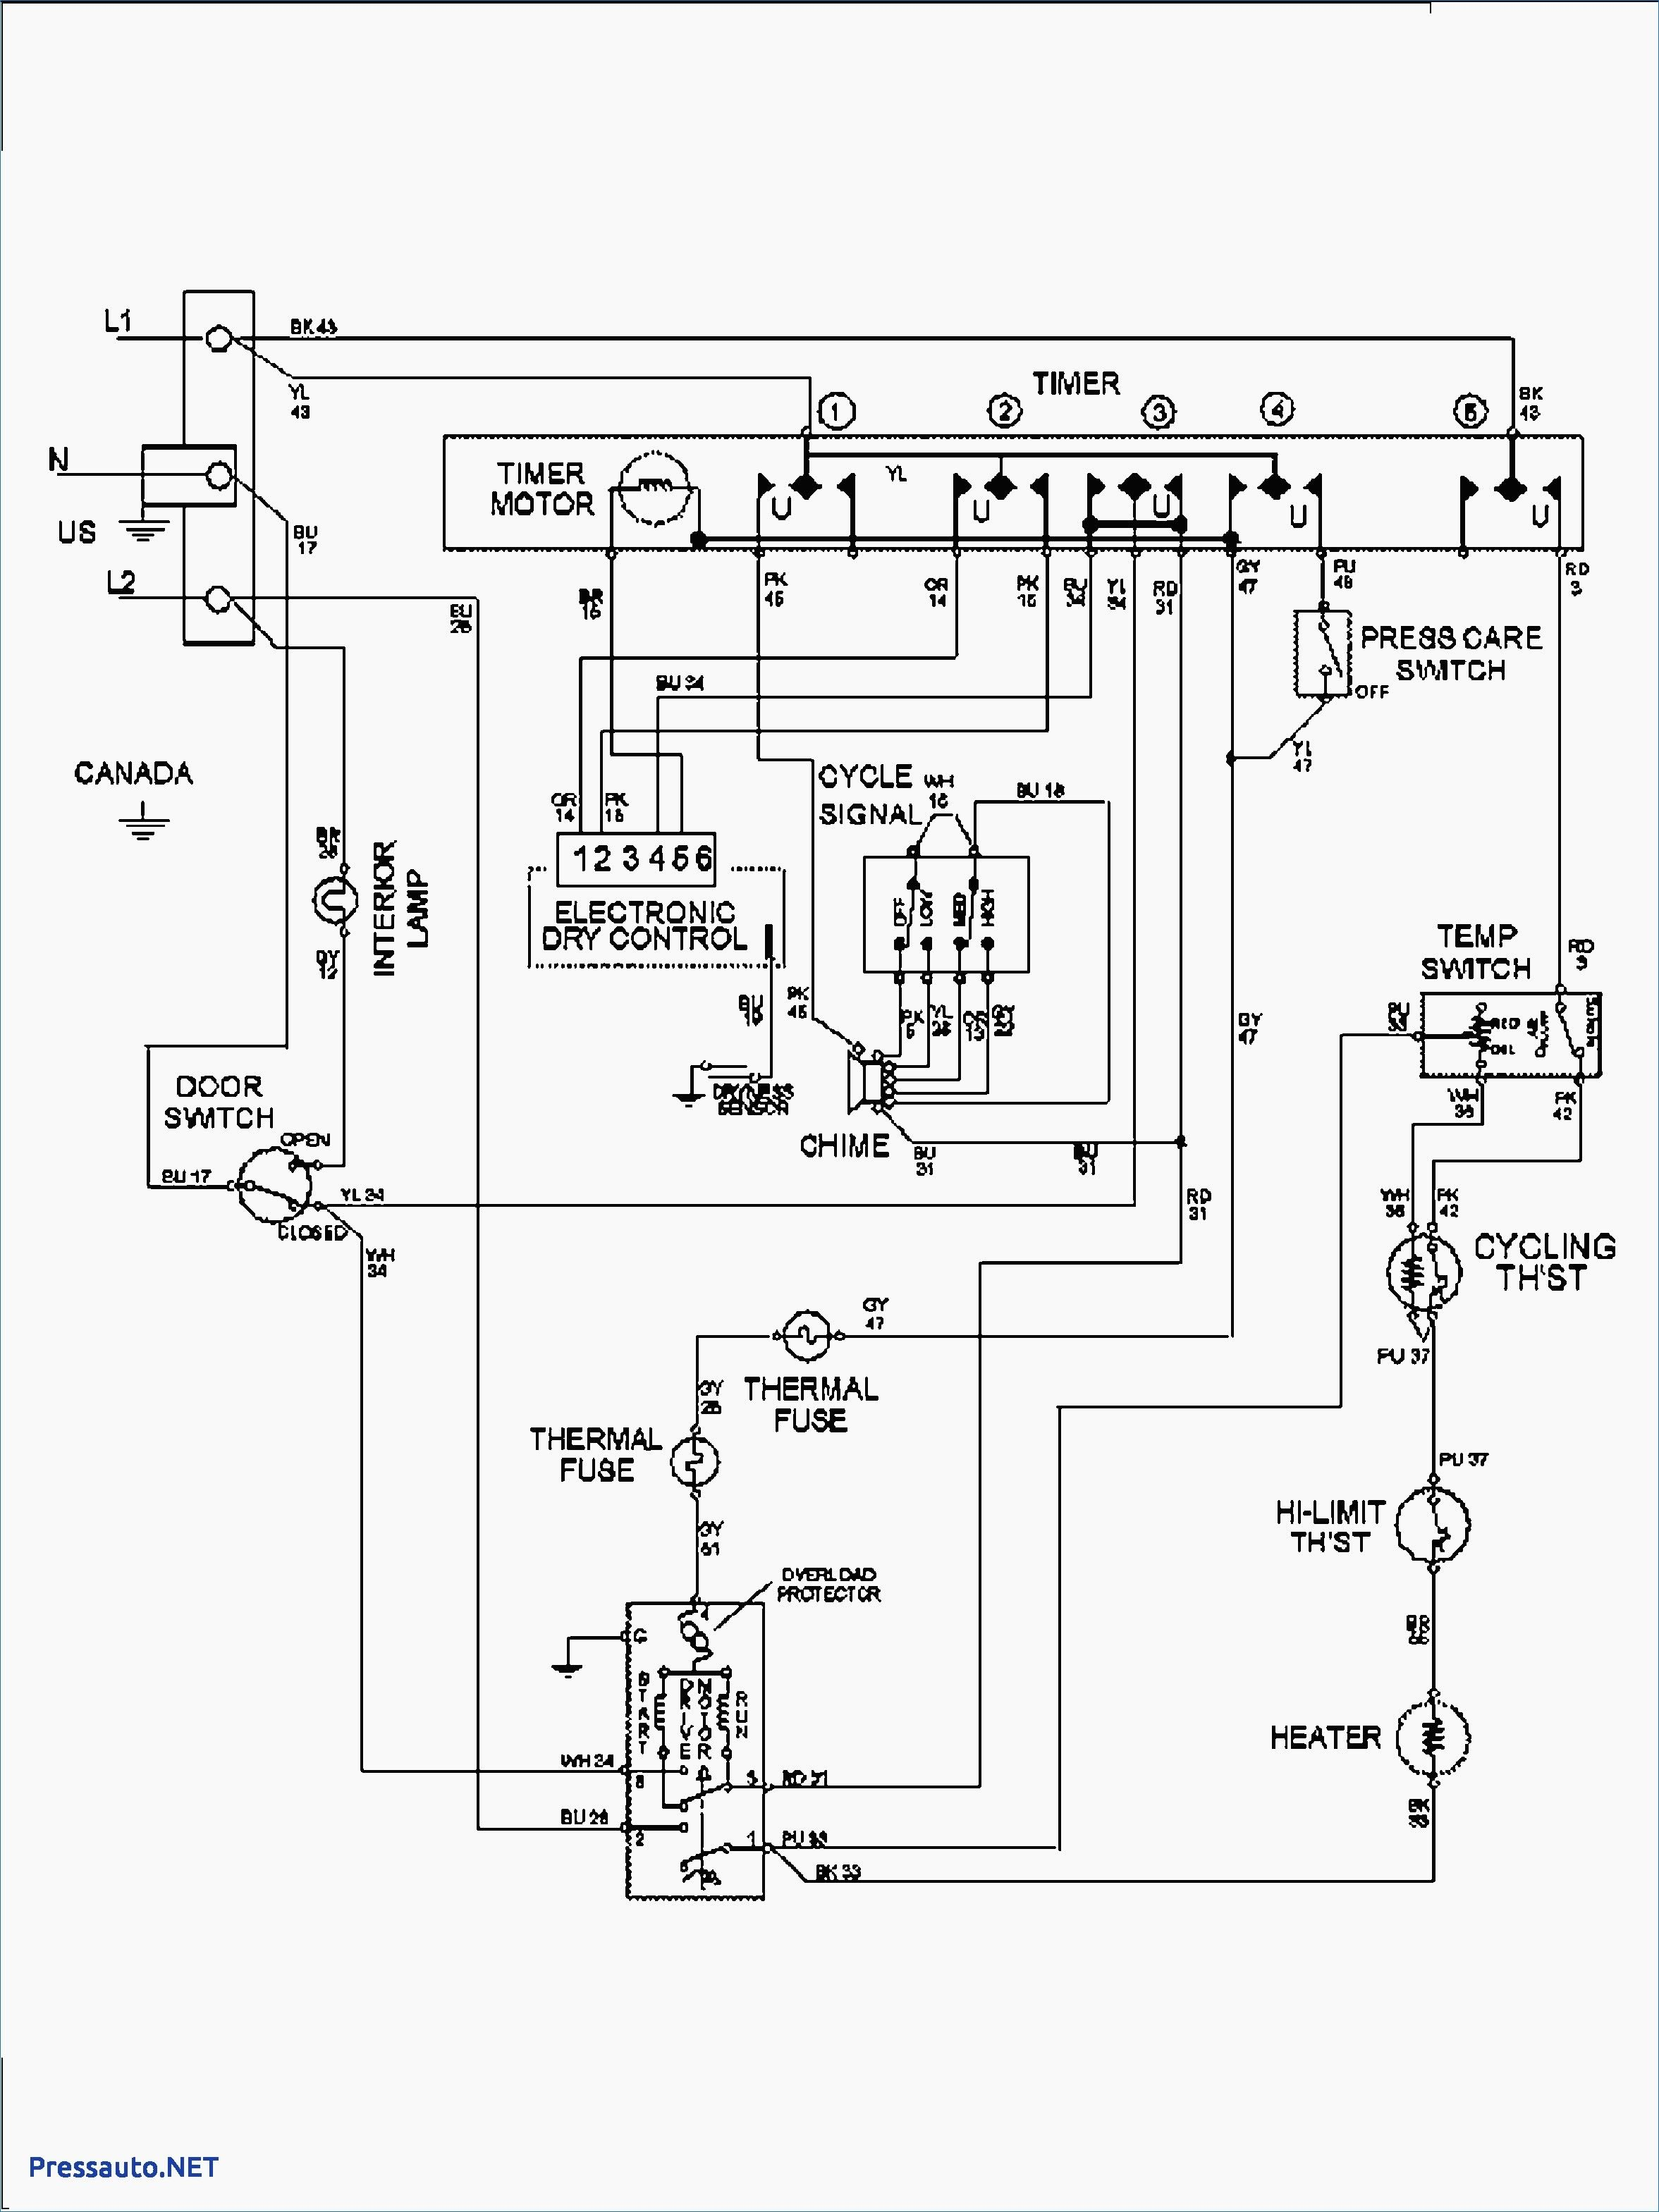 Wiring Diagram Of Washing Machine Pdf Magneto Wiring Diagram For Ignition For Wiring Diagram Schematics